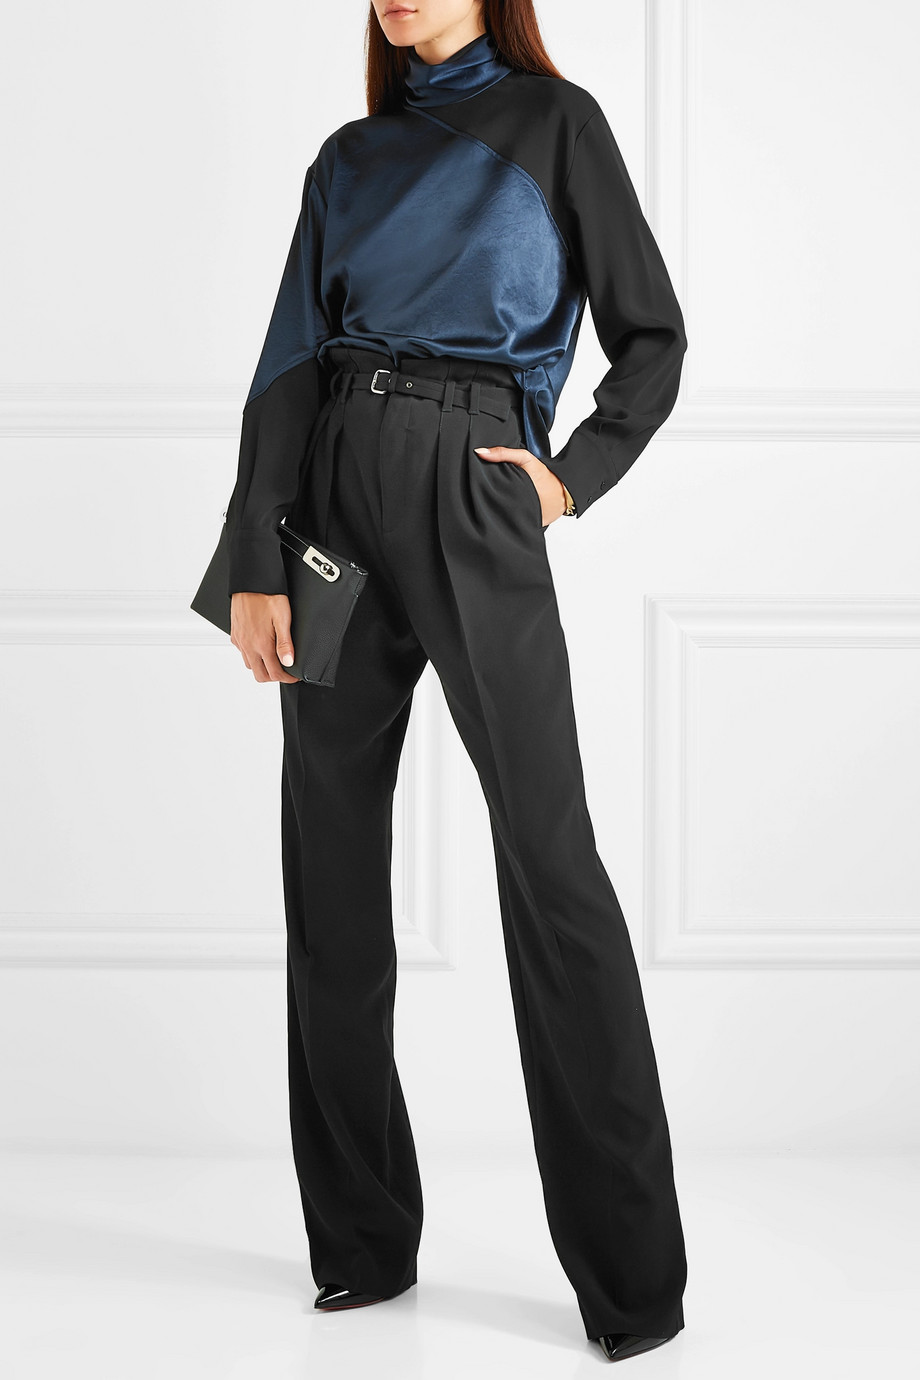 Satin blouse Cédric Charlier buy Satin blouse Cédric Charlier internet shop